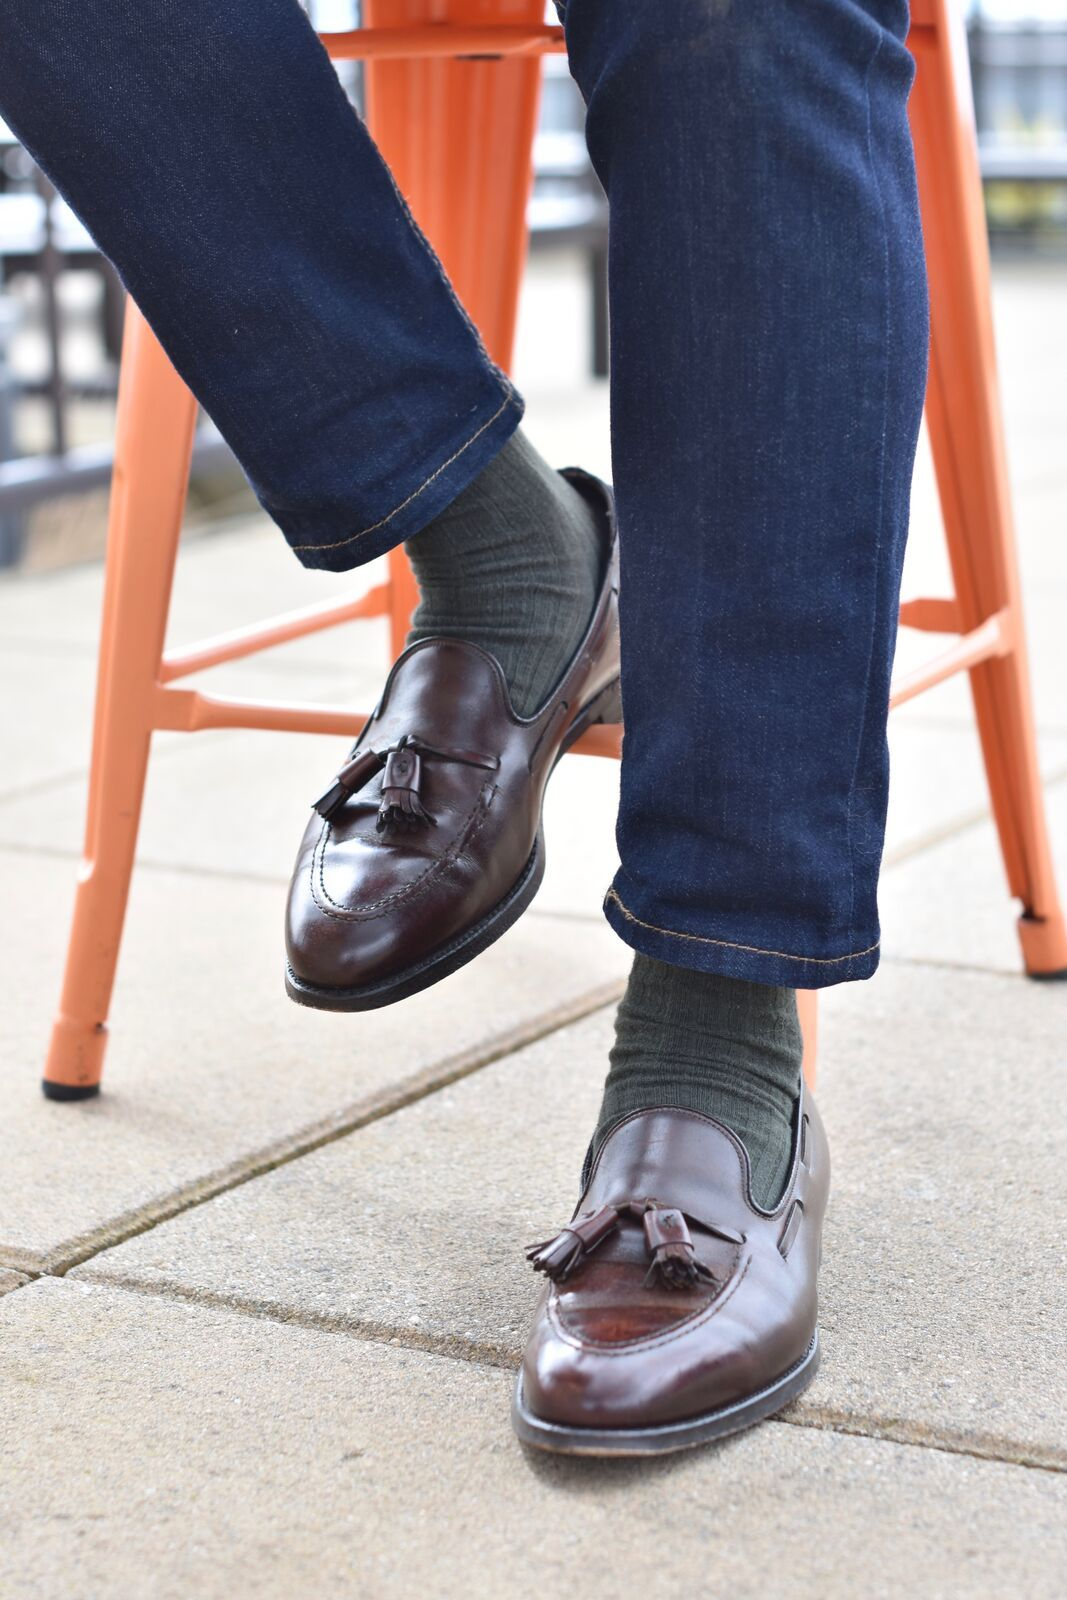 Alden Tassels Loafers all day everyday